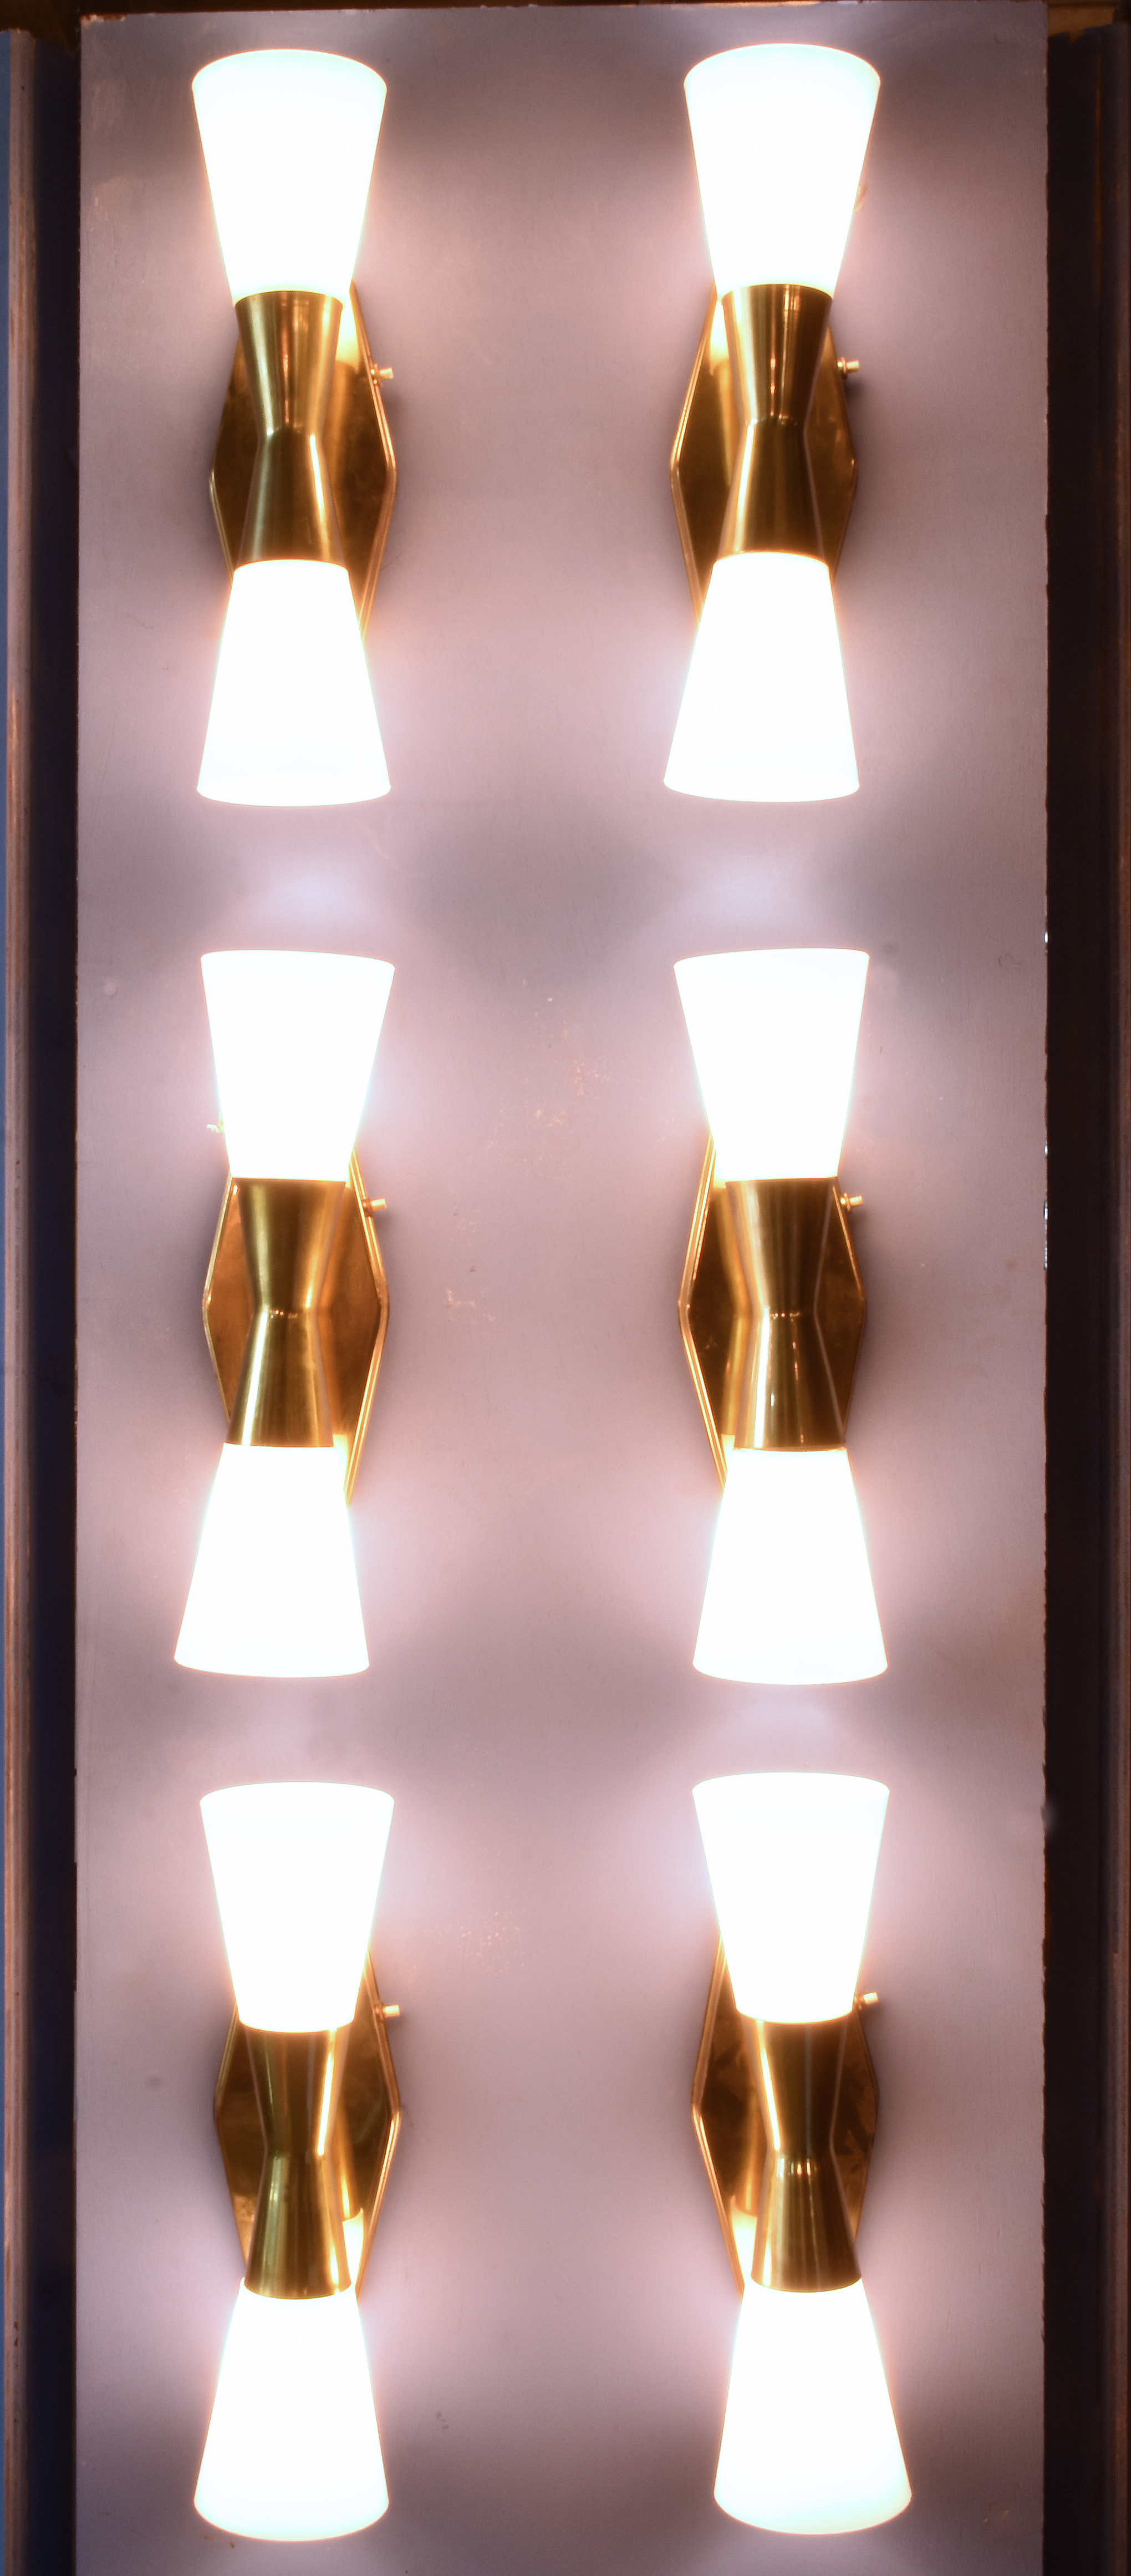 48020-BOWTIE-SCONCES 6 on.jpg